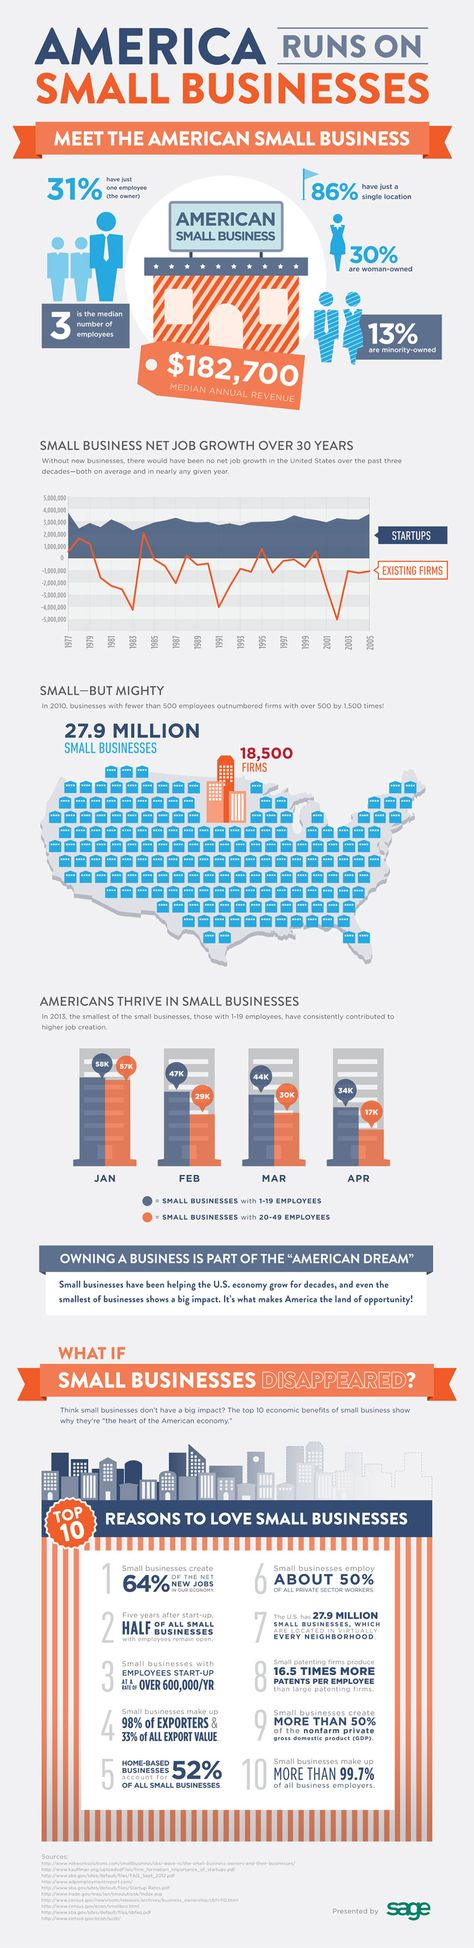 23 Amazing Small Business Statistics on Revenue, Growth and Employment